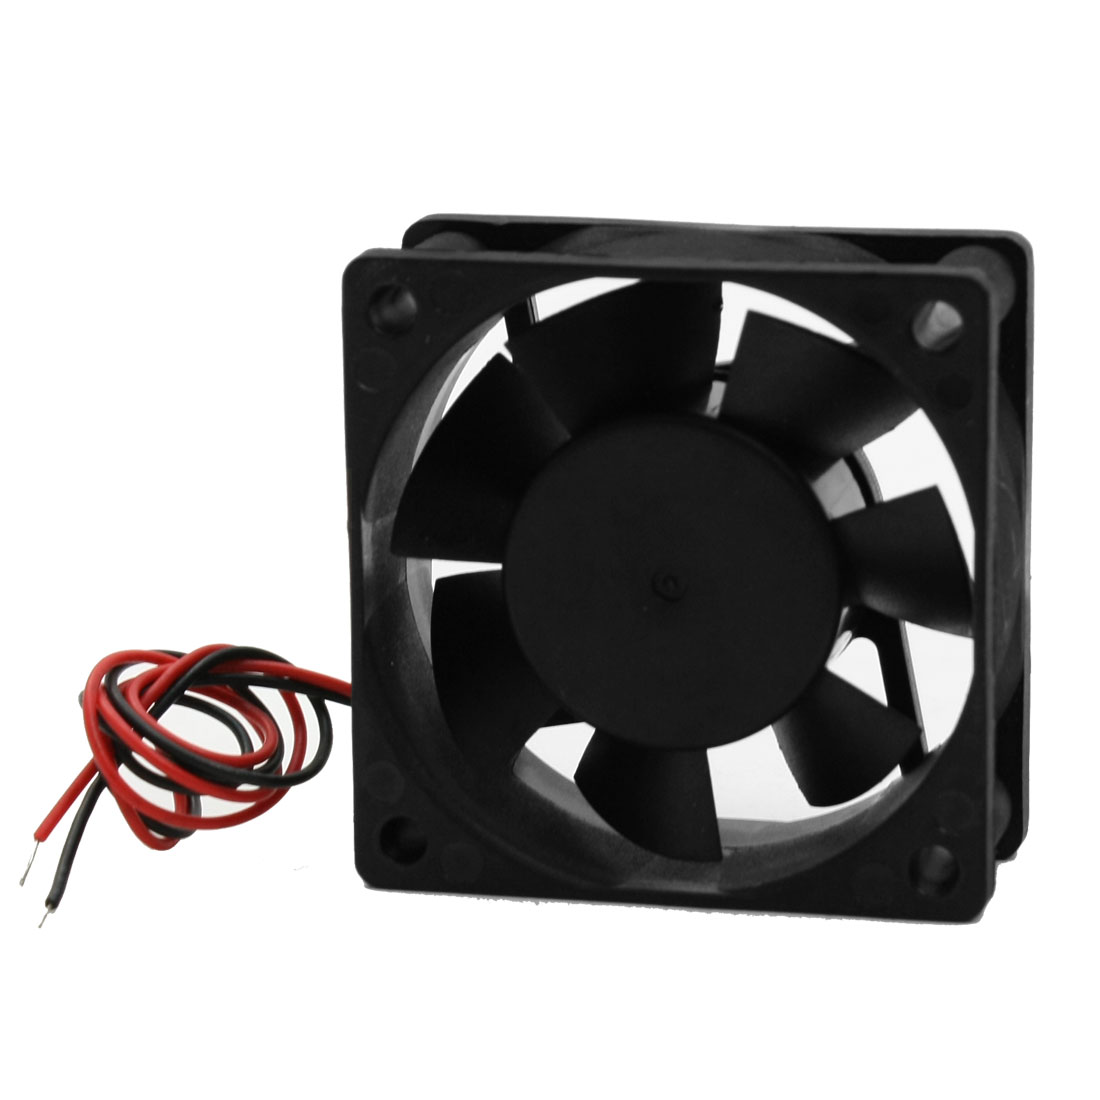 12V DC 0.13A 60 x 60 x 25mm 2 Wire Computer PC CPU Cooling Case Fan